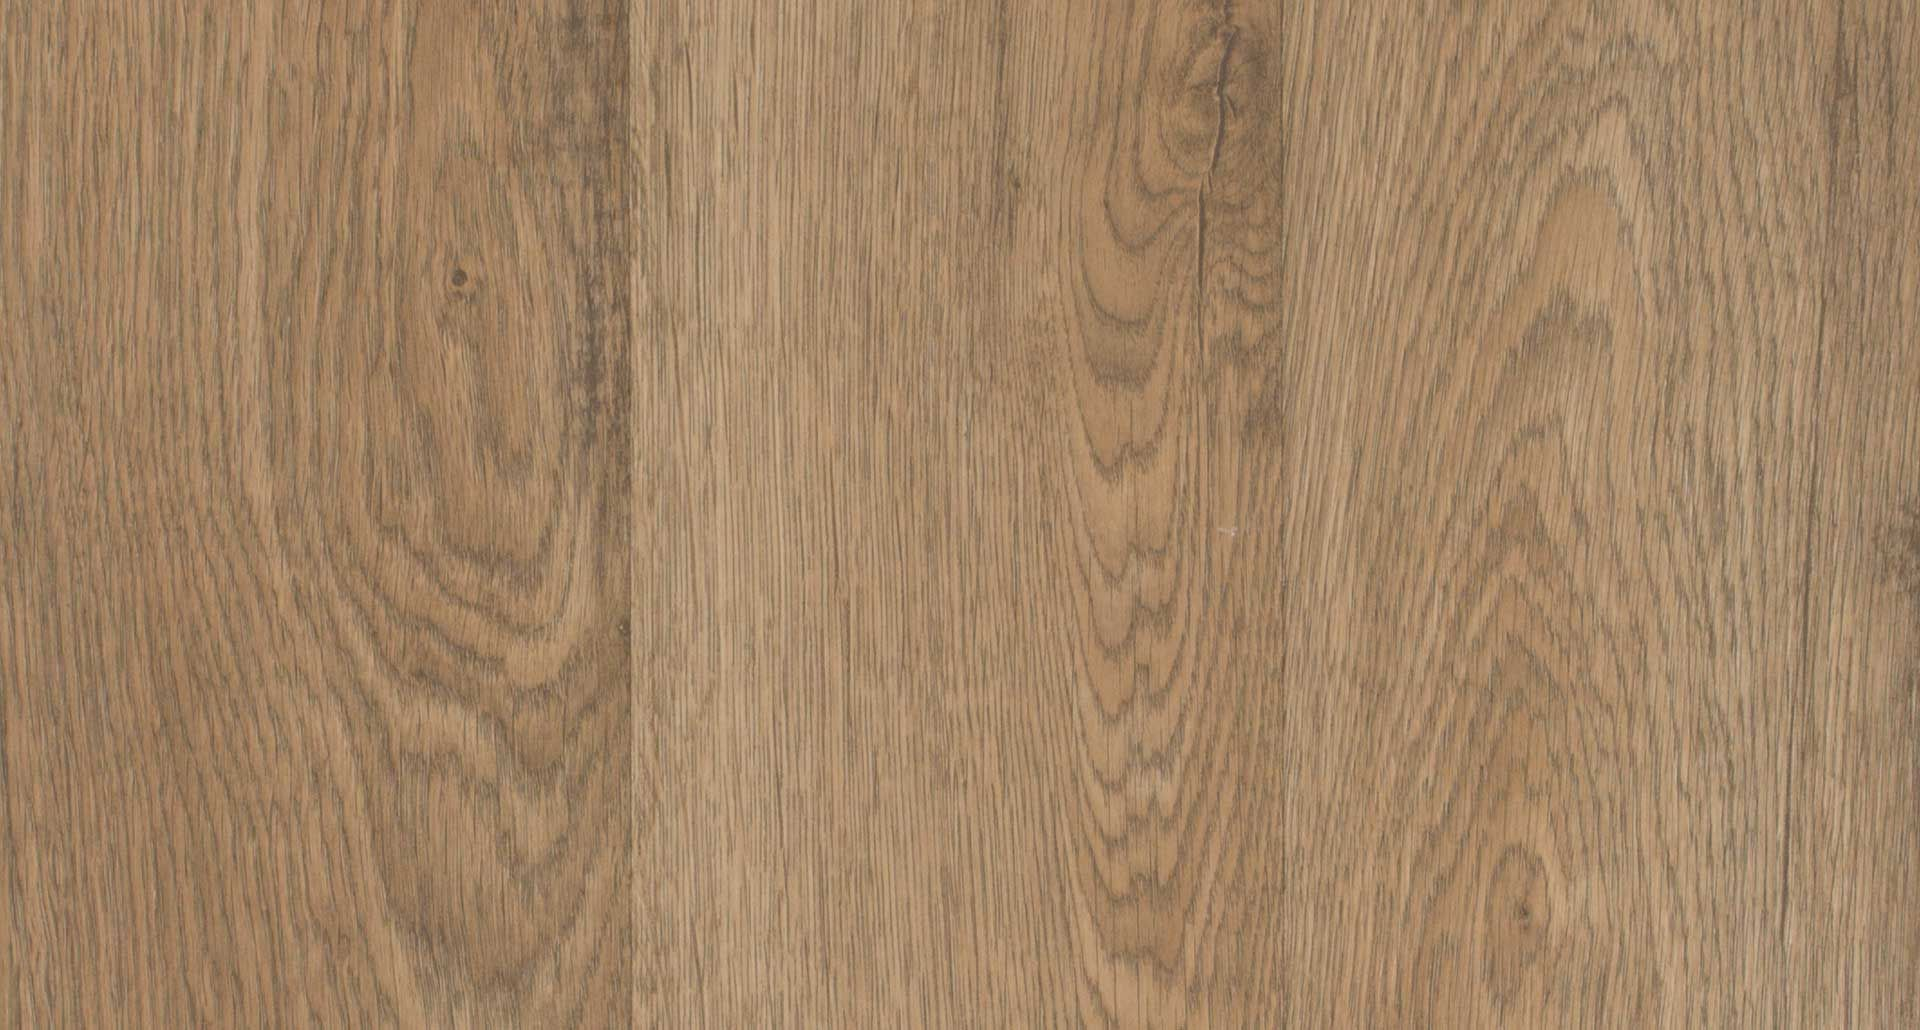 Prairie Ridge Oak smooth laminate floor. Warm wood colors, oak finish, 10mm 1-strip plank laminate flooring, easy to install, PERGO lifetime warranty.